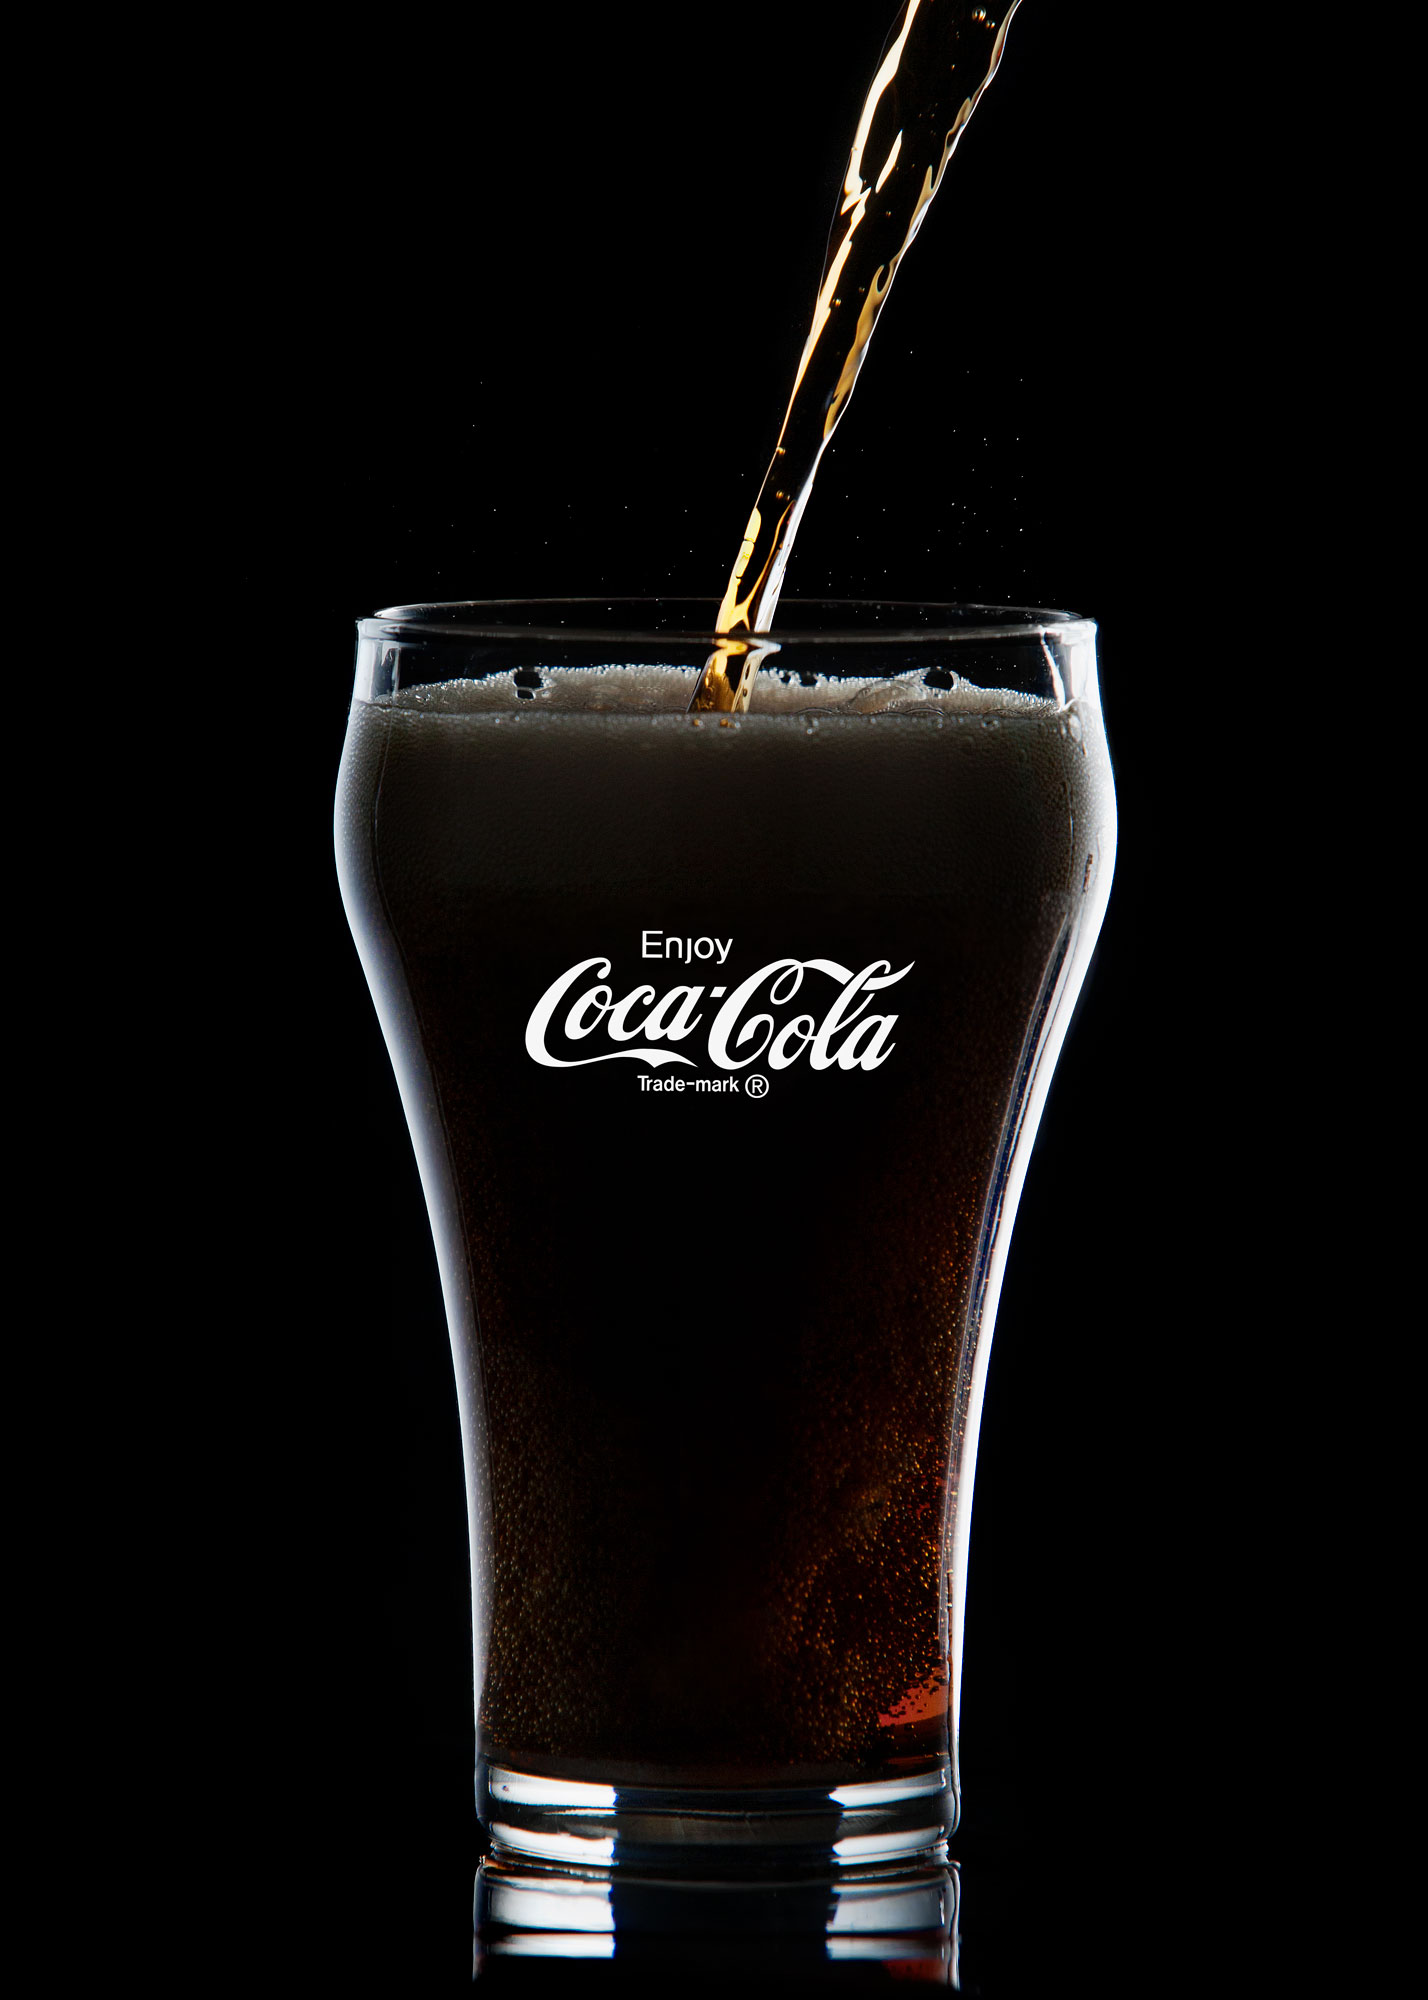 Product Photography II: Coca-Cola Glass by Alex Kay